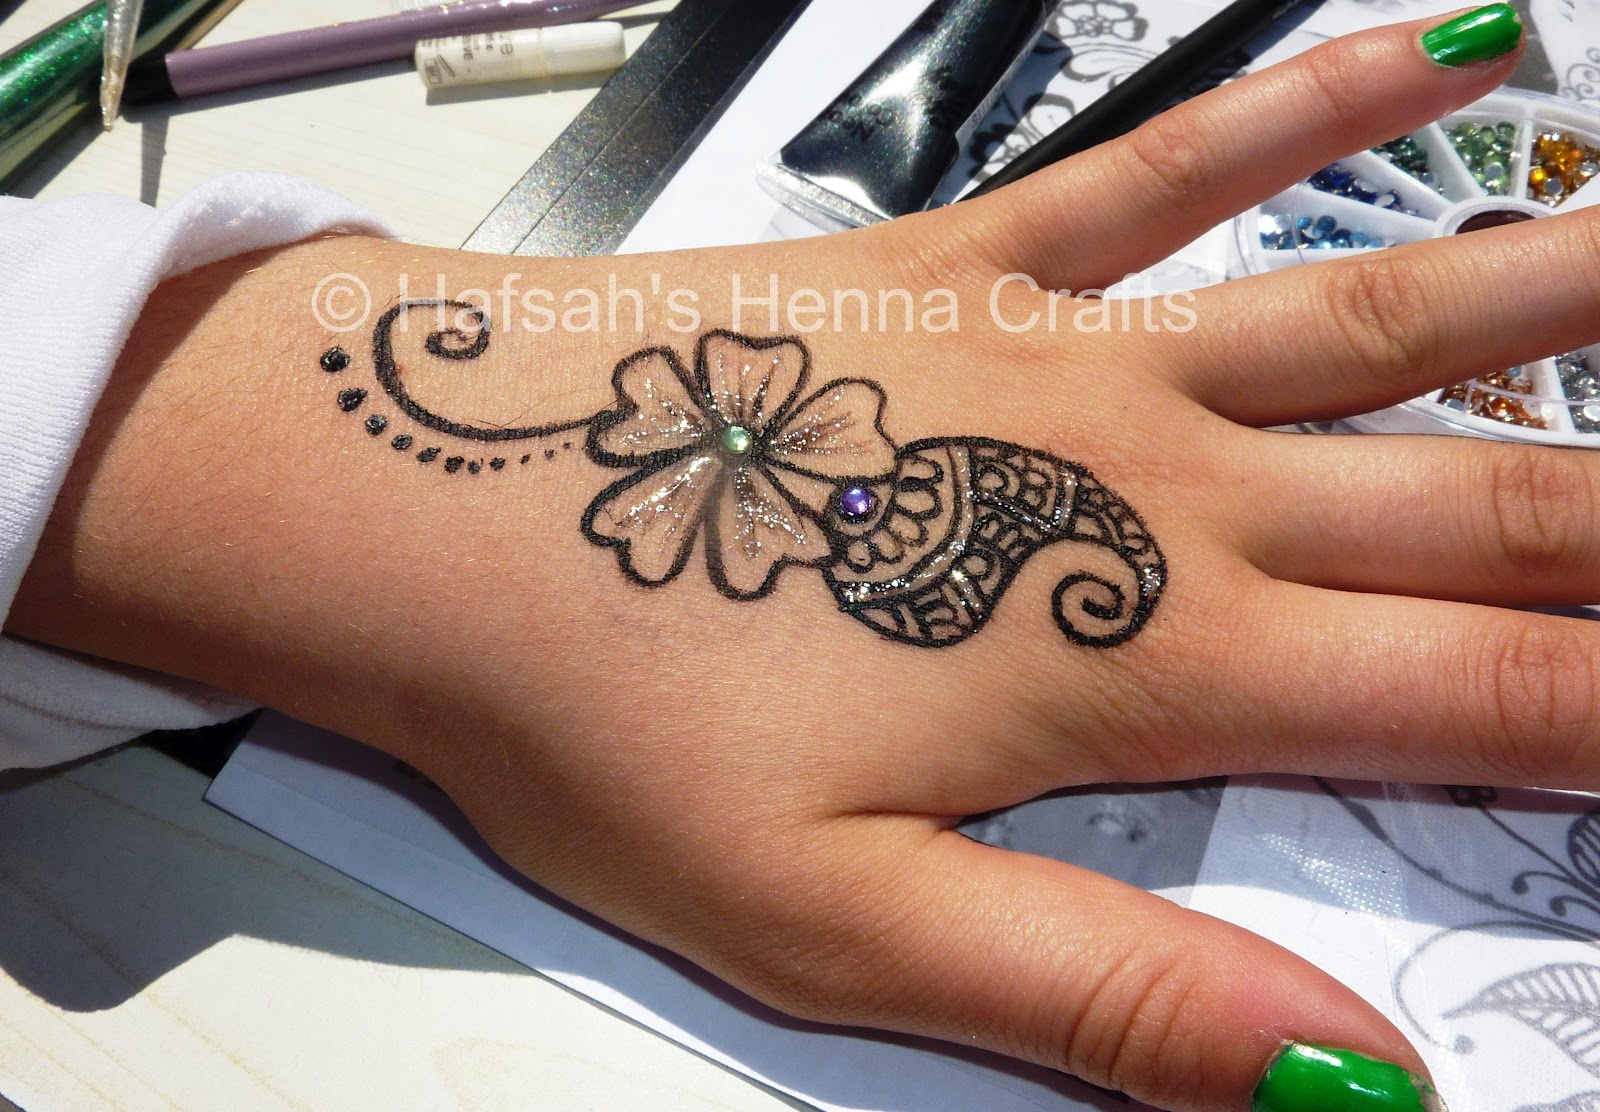 Hafsah39s Henna Crafts